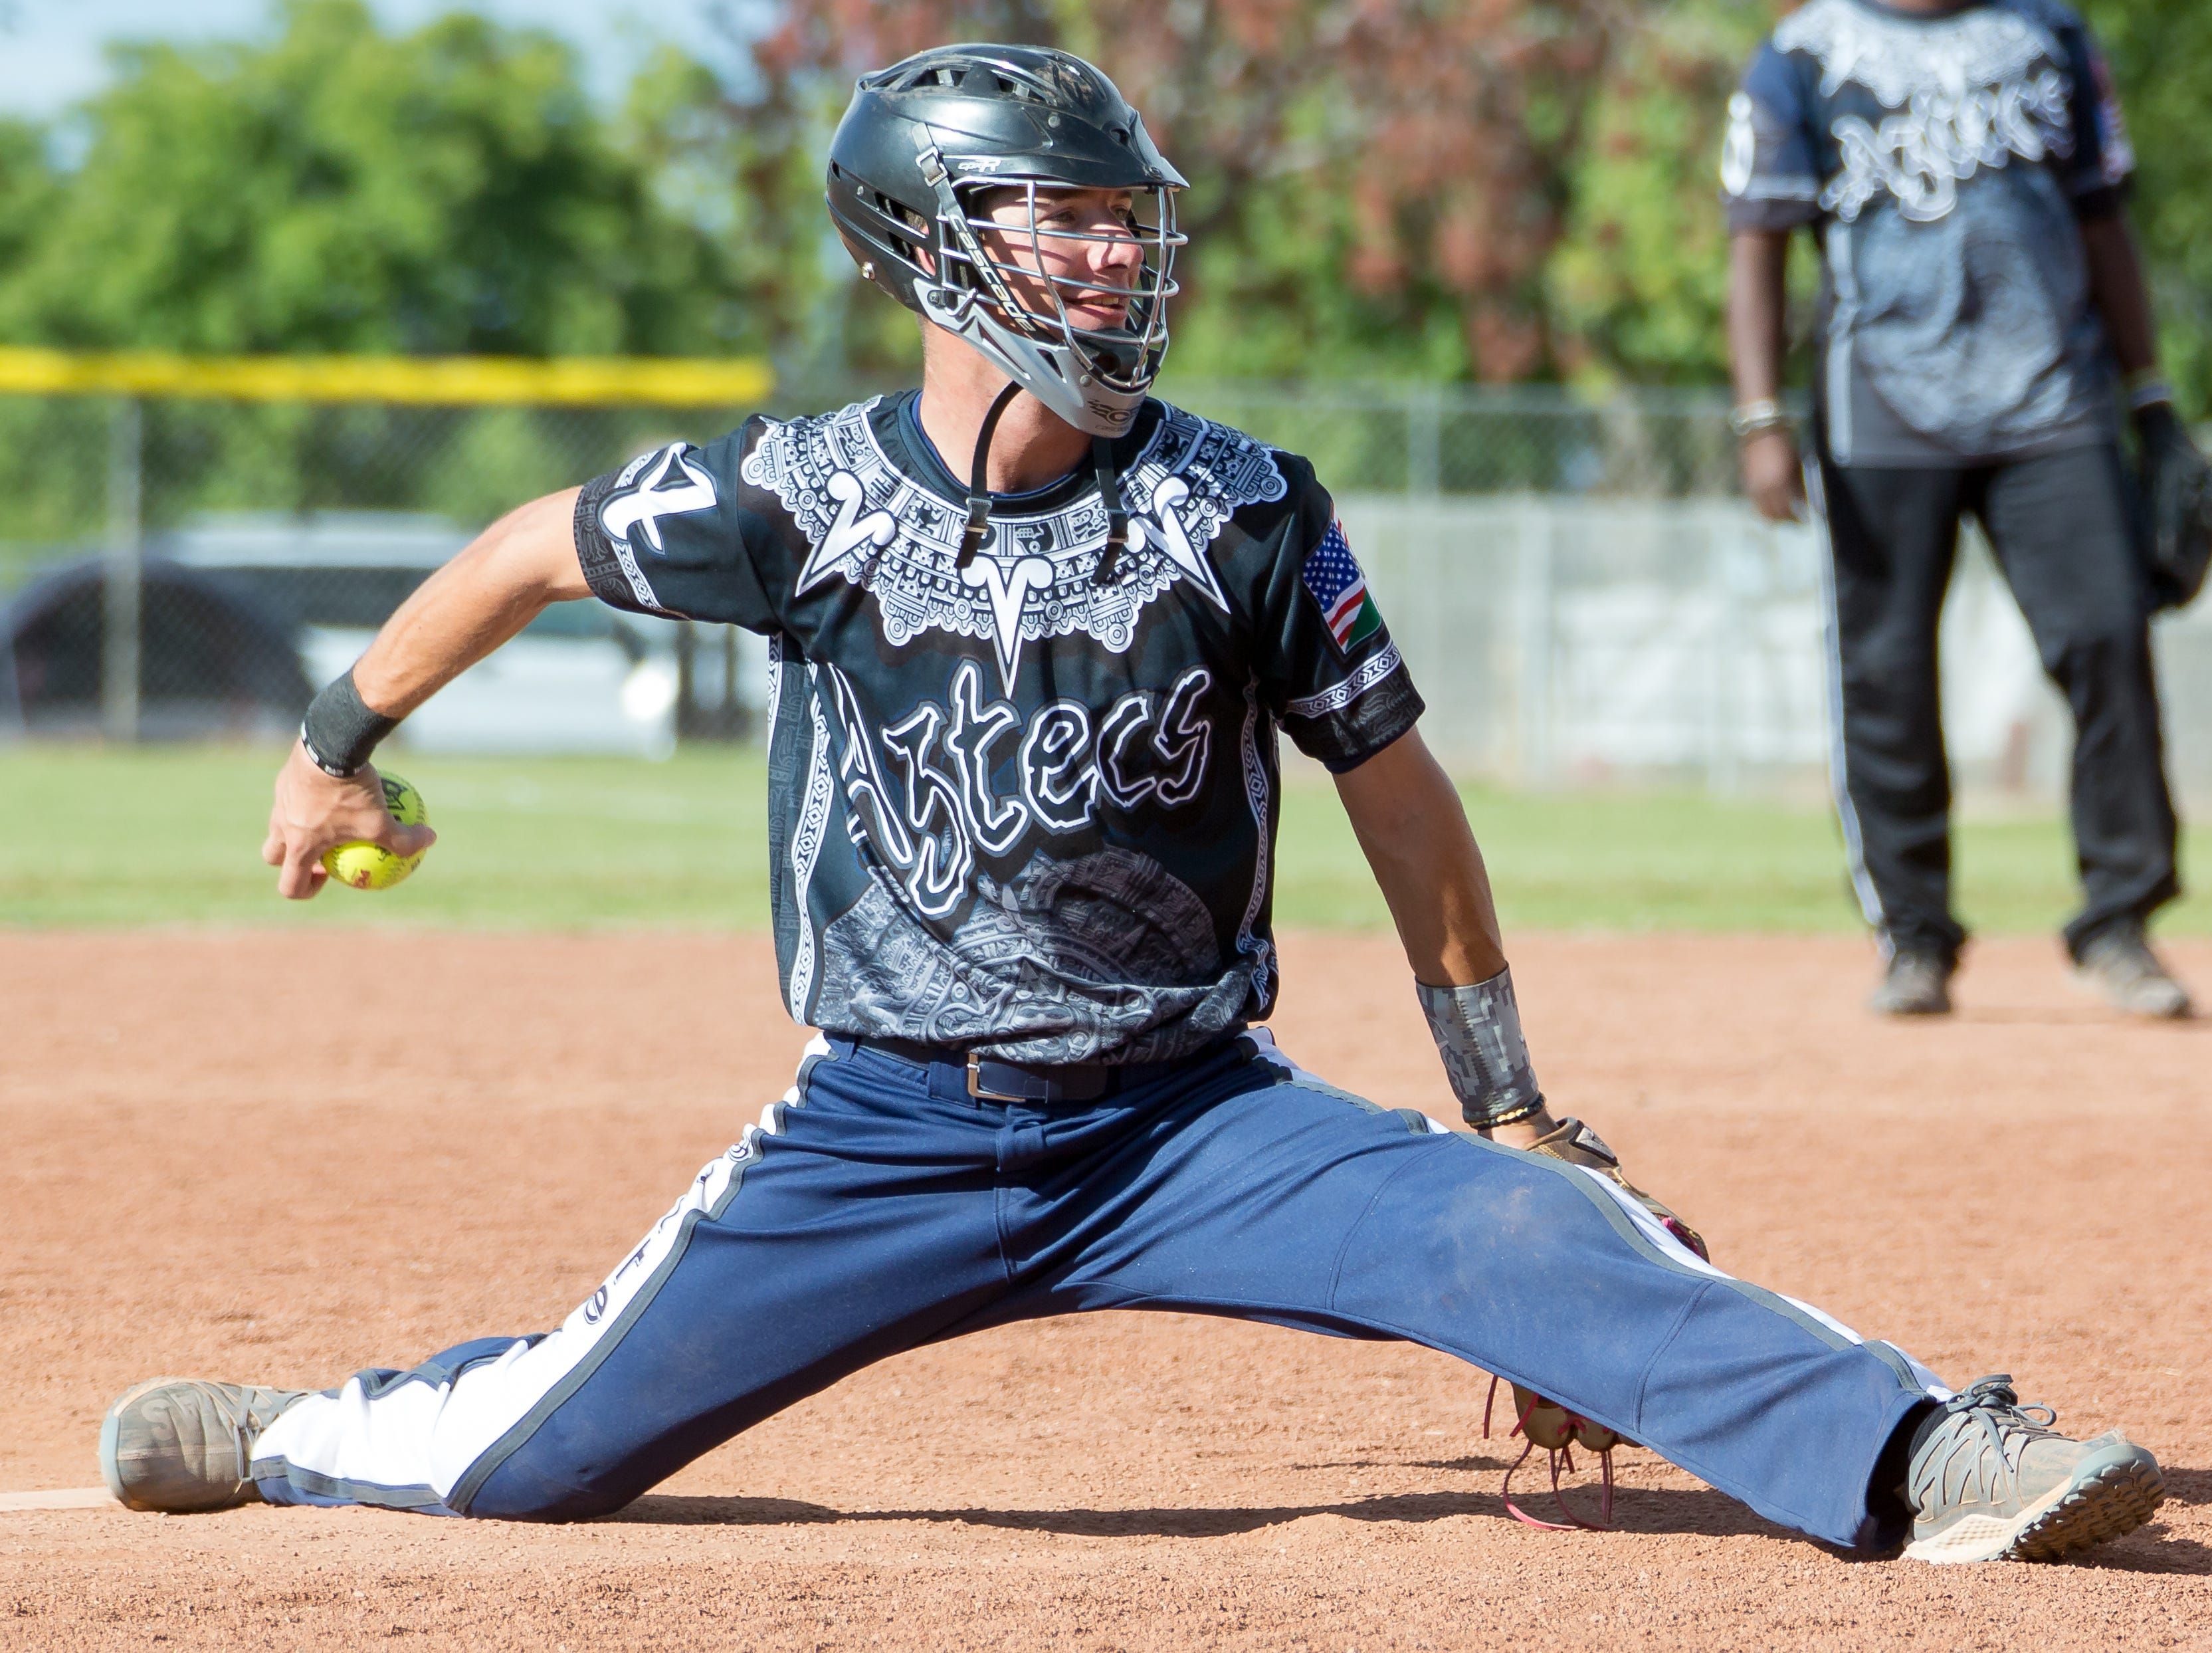 Jesse Jones, of Las Vegas, Nevada, does a split while pitching  on Sunday, Oct. 7, 2018 during the 39th Whole Enchilada Invitational softball tournament at the Hadley complex.